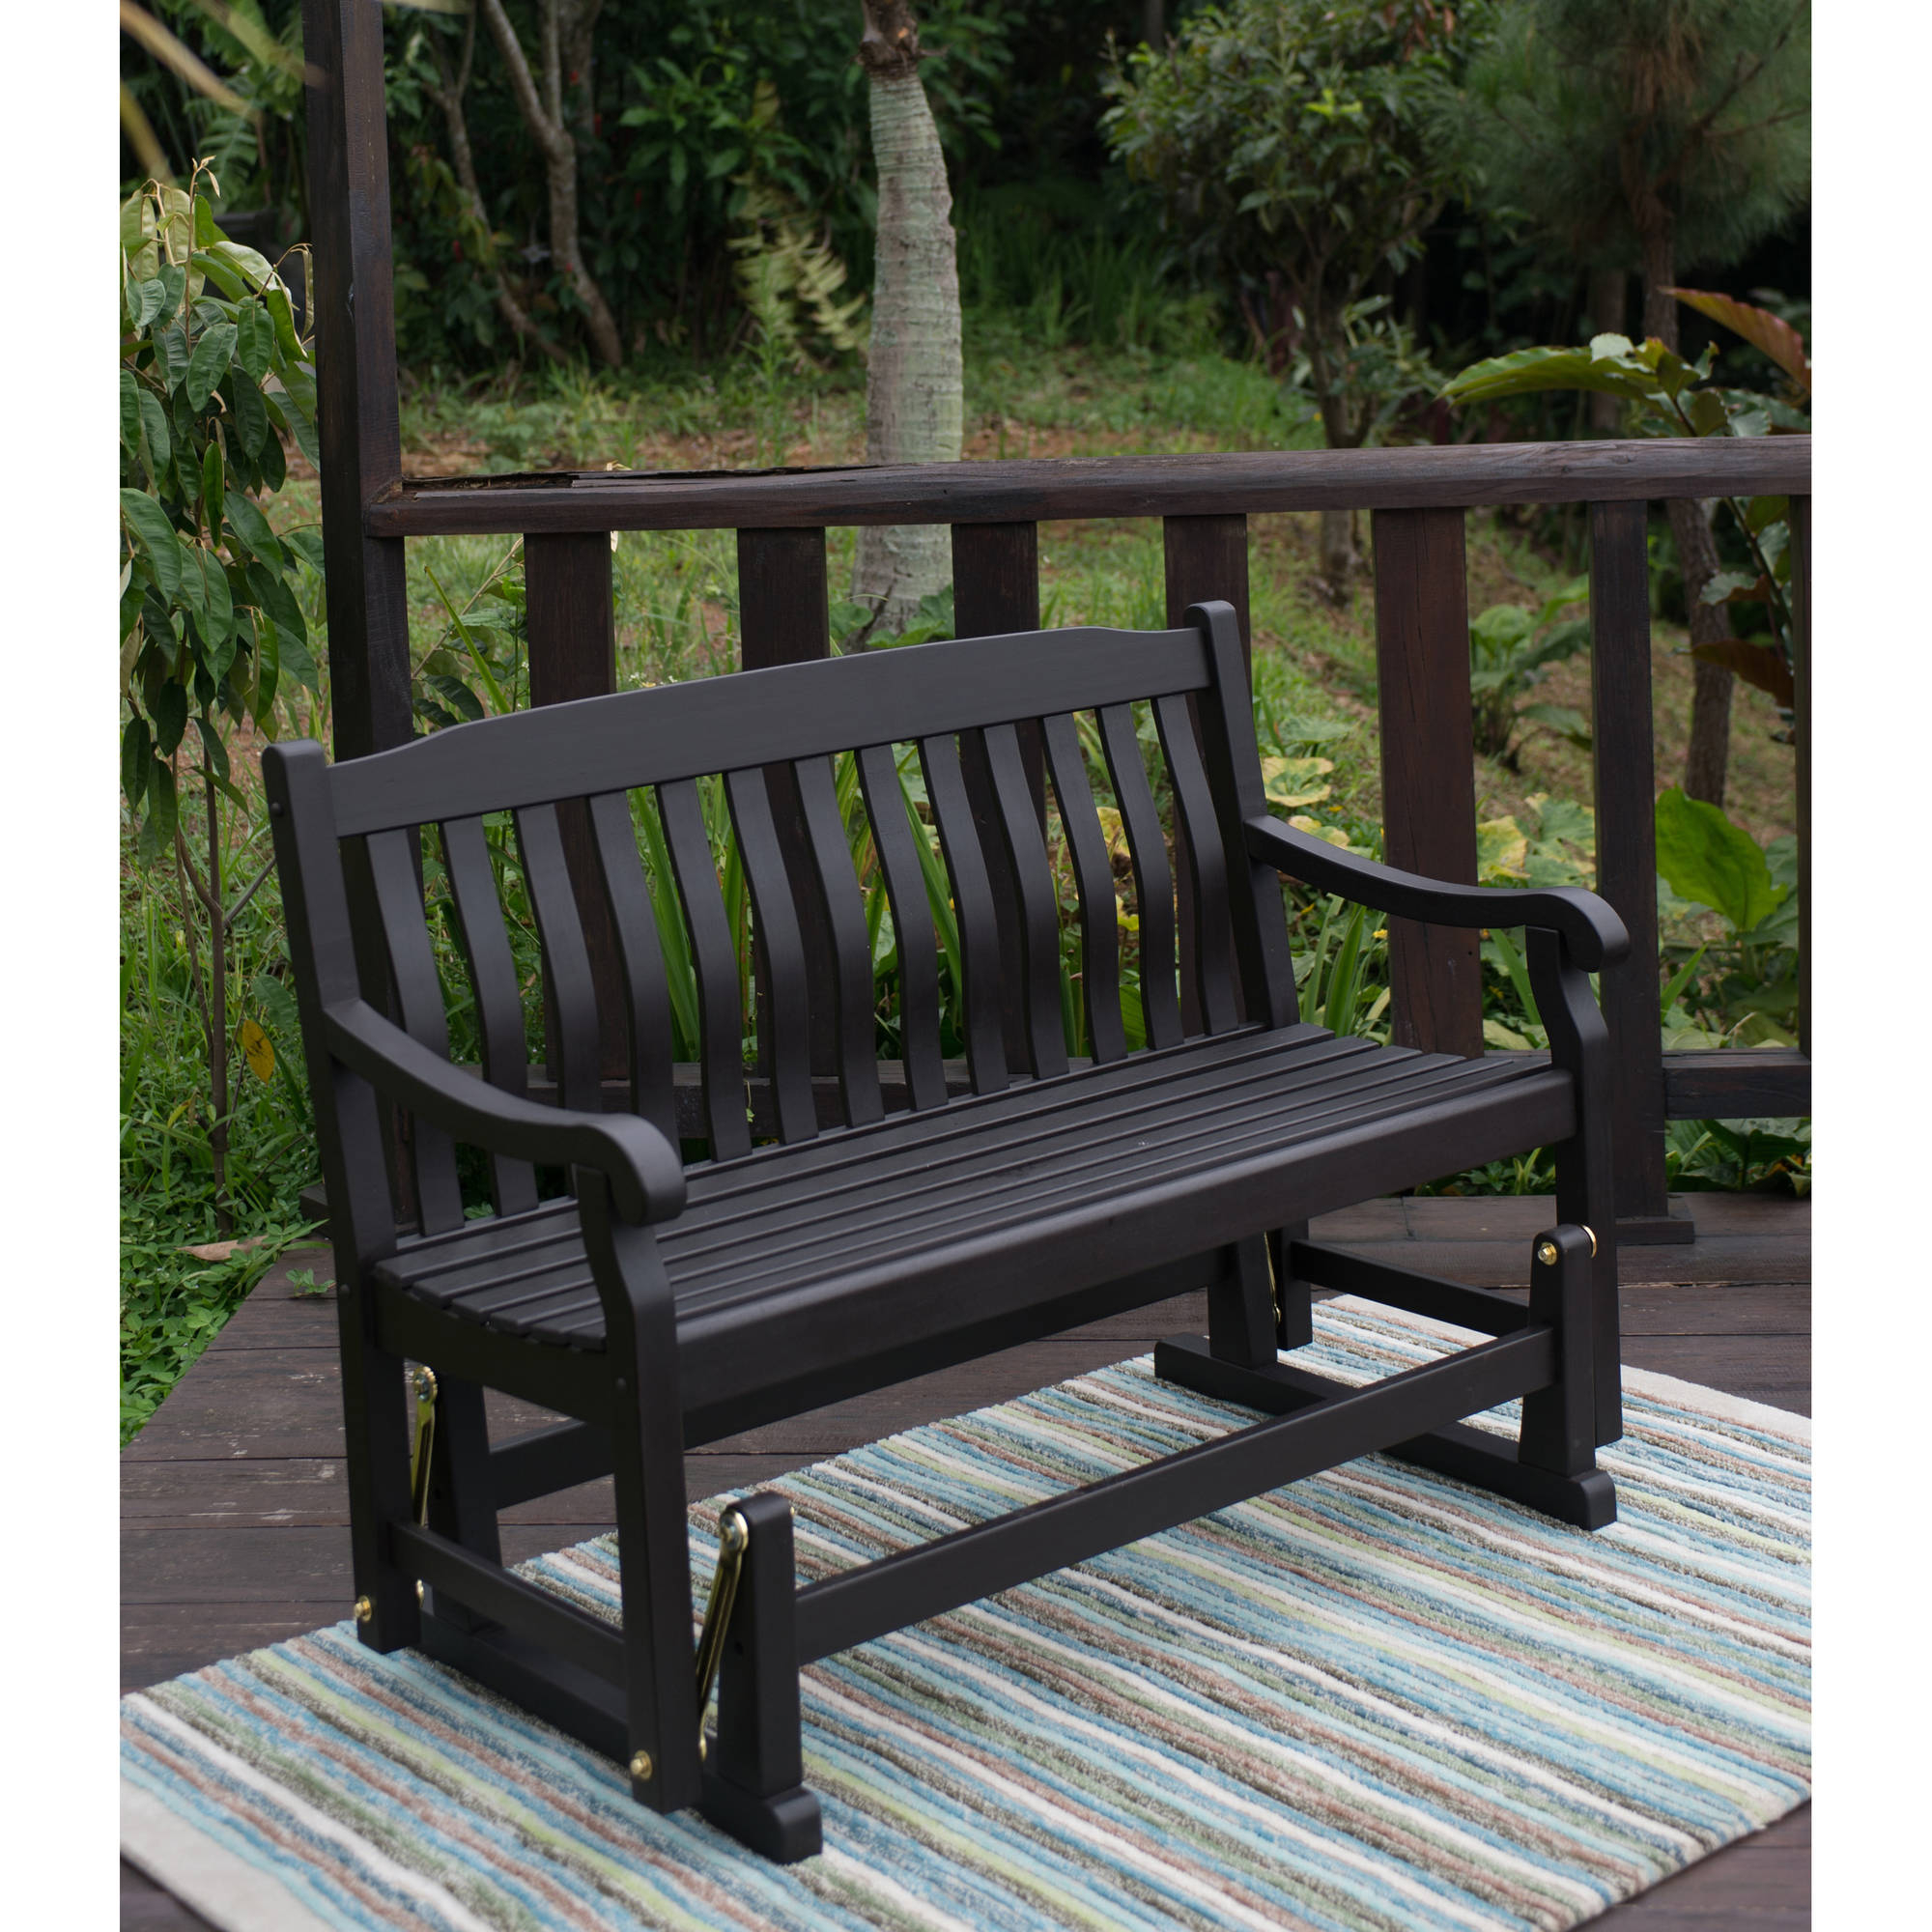 Furniture: Alluring Design Of Porch Glider For Outdoor Within Indoor/outdoor Double Glider Benches (View 12 of 25)